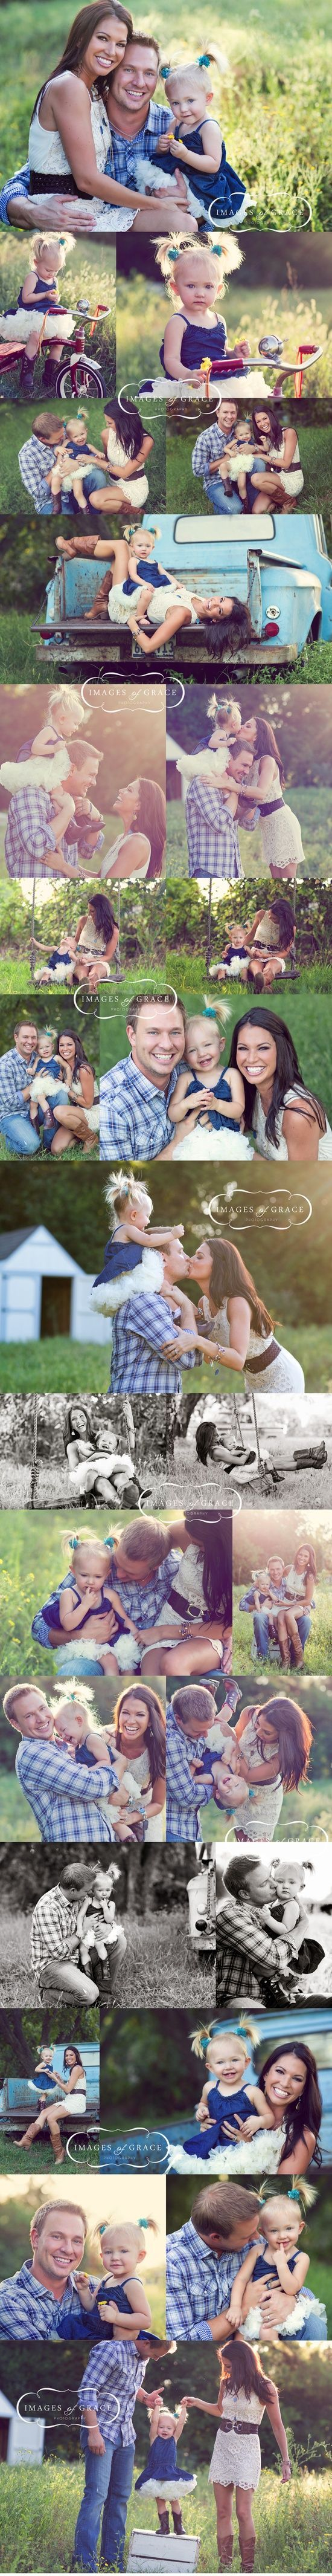 Adorable family photos love melissa rycroft! Honestly can their family gat anymore perfect? #familyphotography,